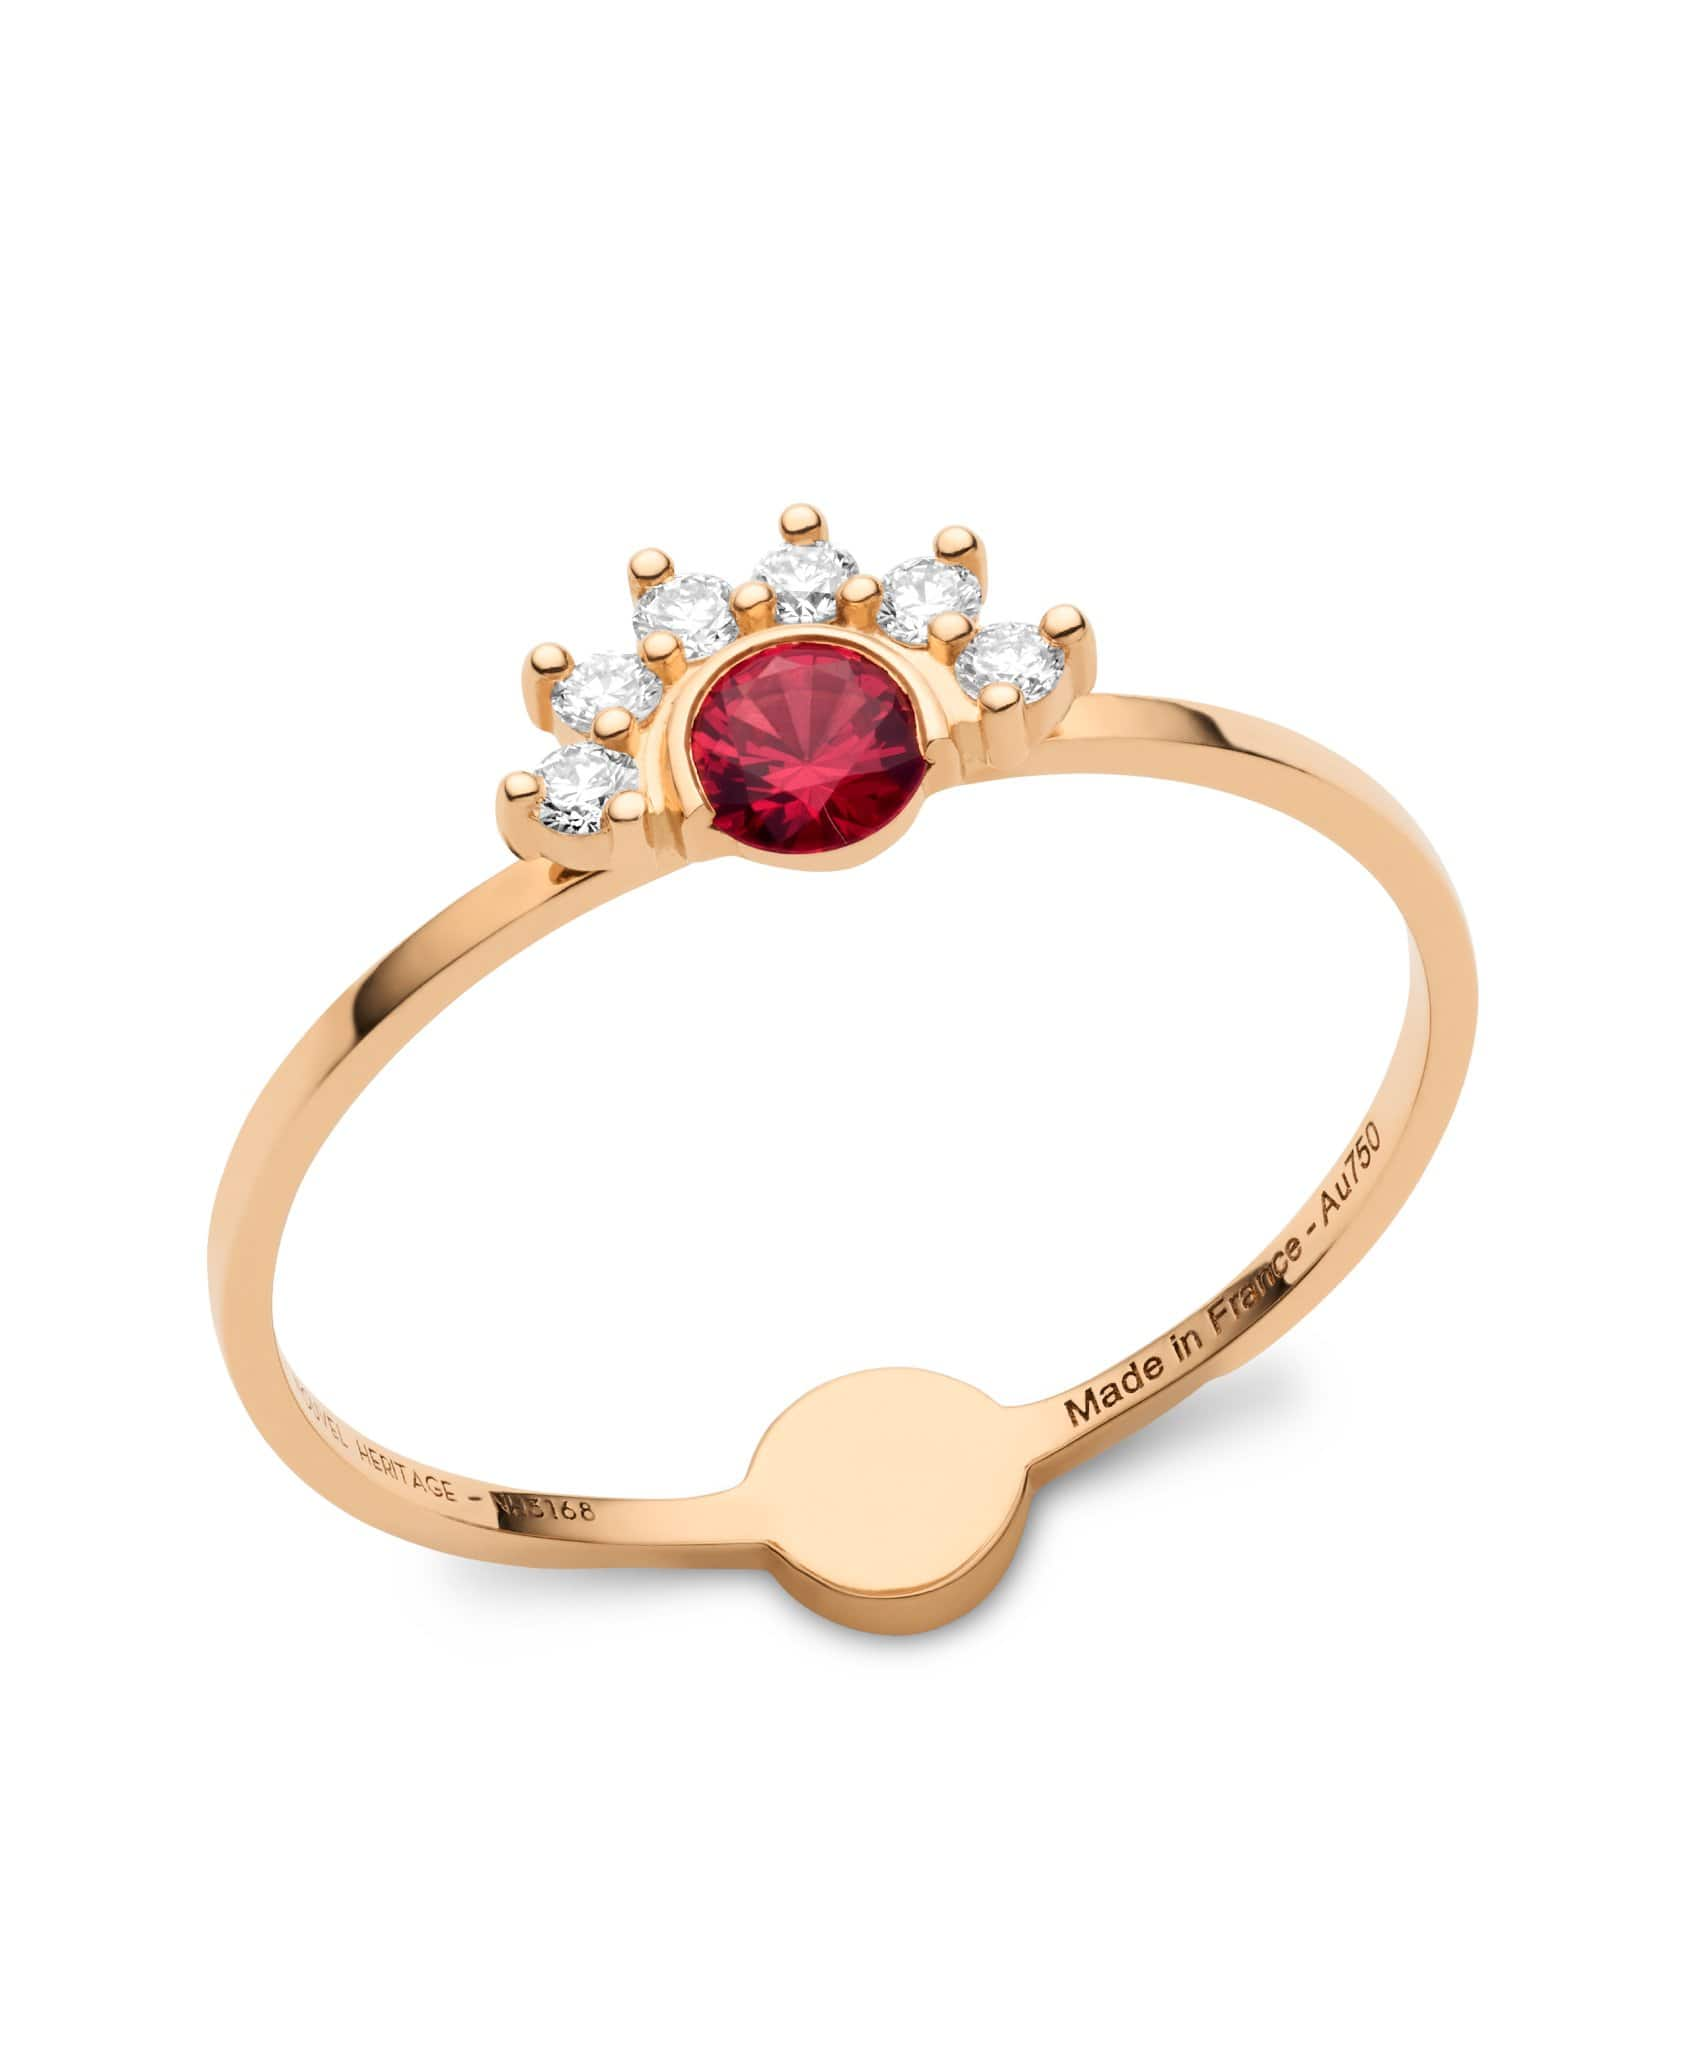 Red Spinel Ring: Discover Luxury Fine Jewelry | Nouvel Heritage